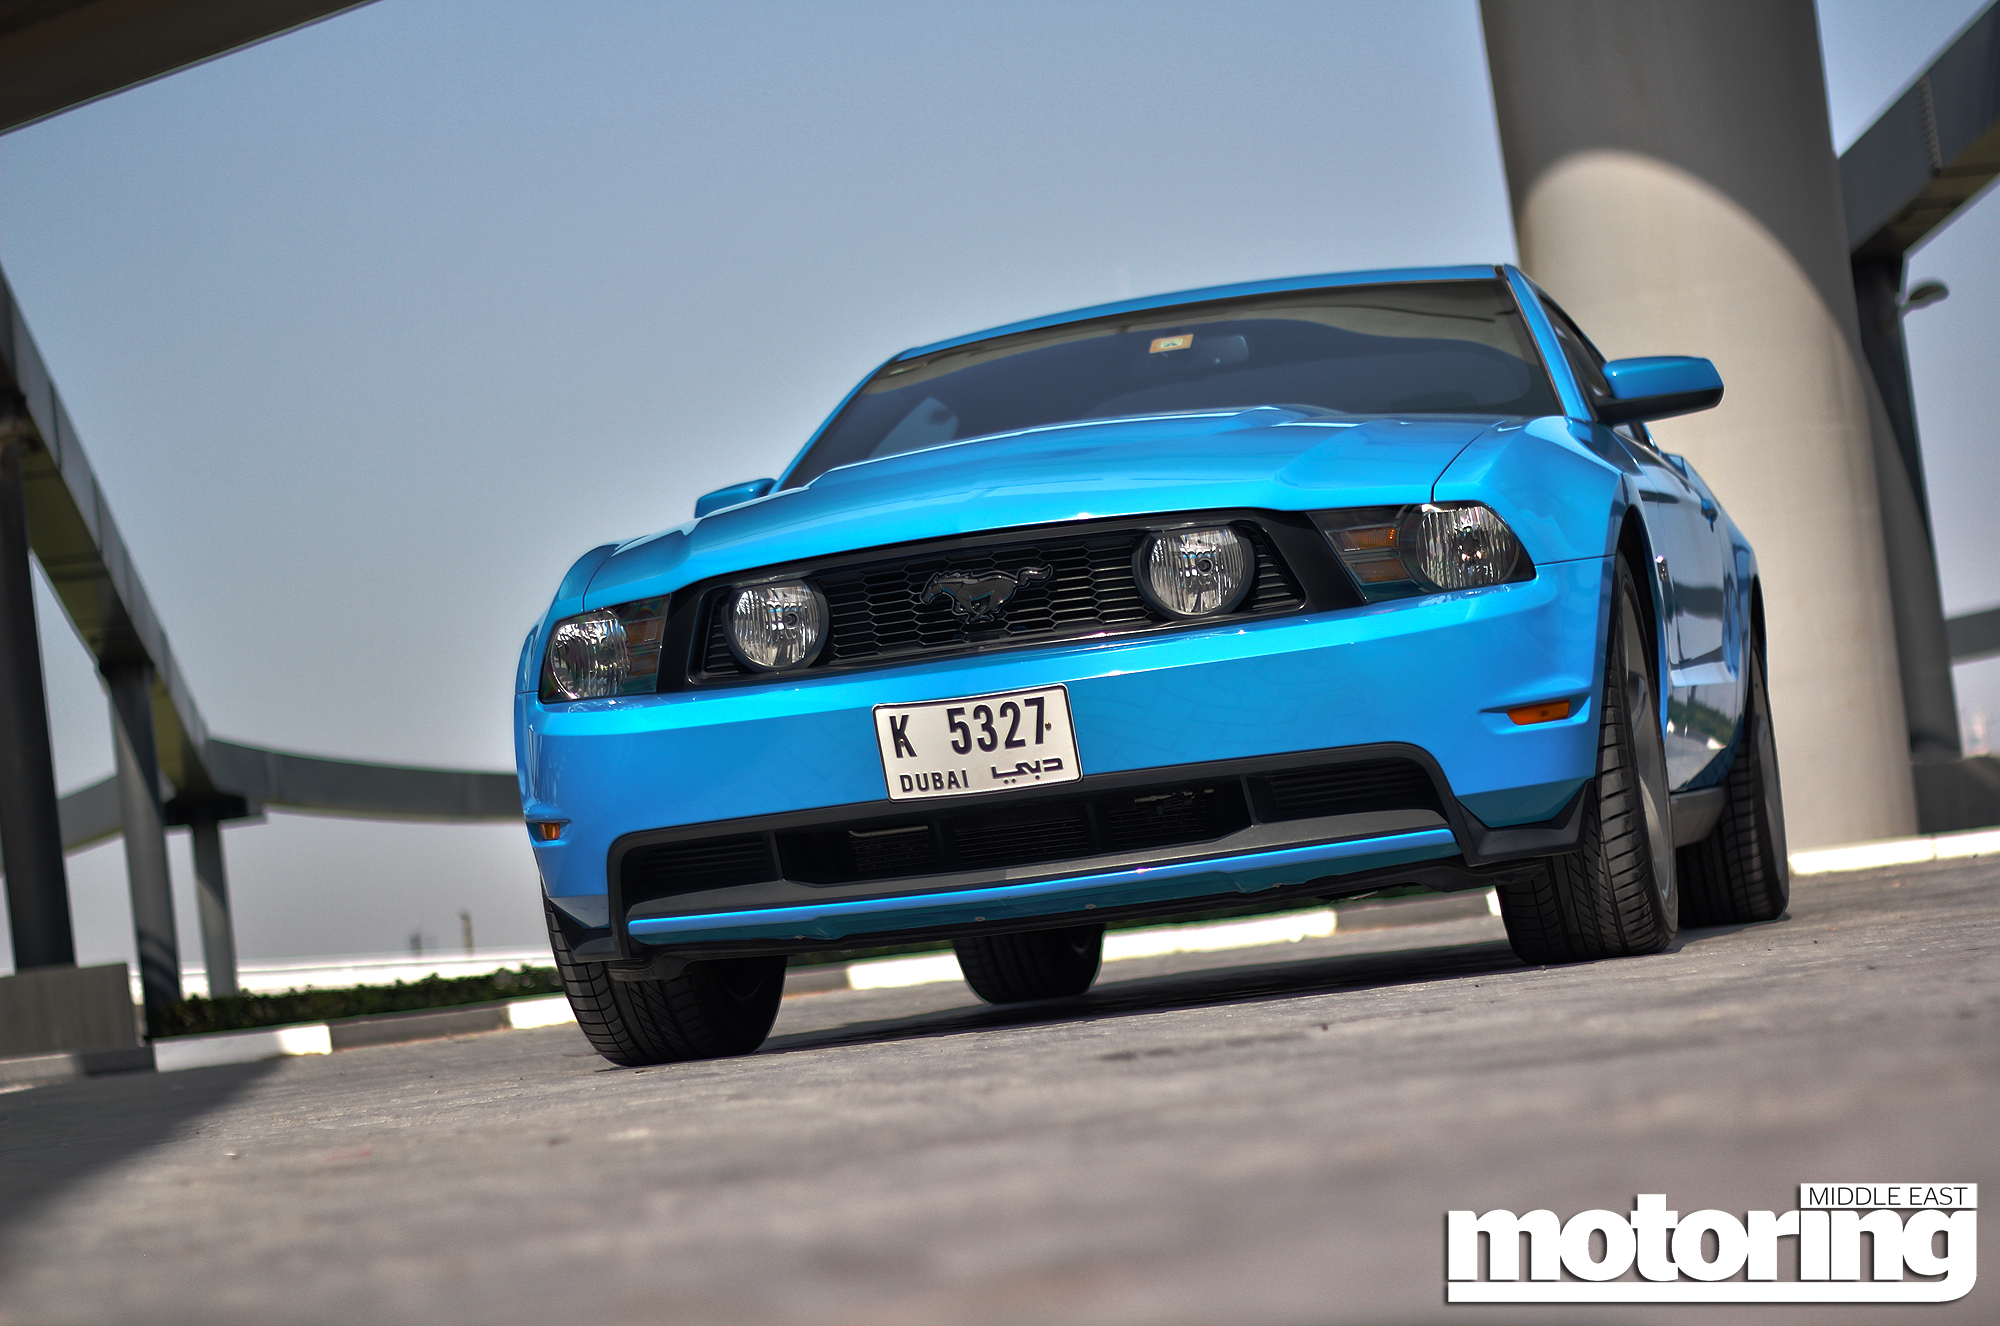 used buying guide ford mustang 2005 2014 how to buy rh motoringme com 09 Mustang 06 Mustang